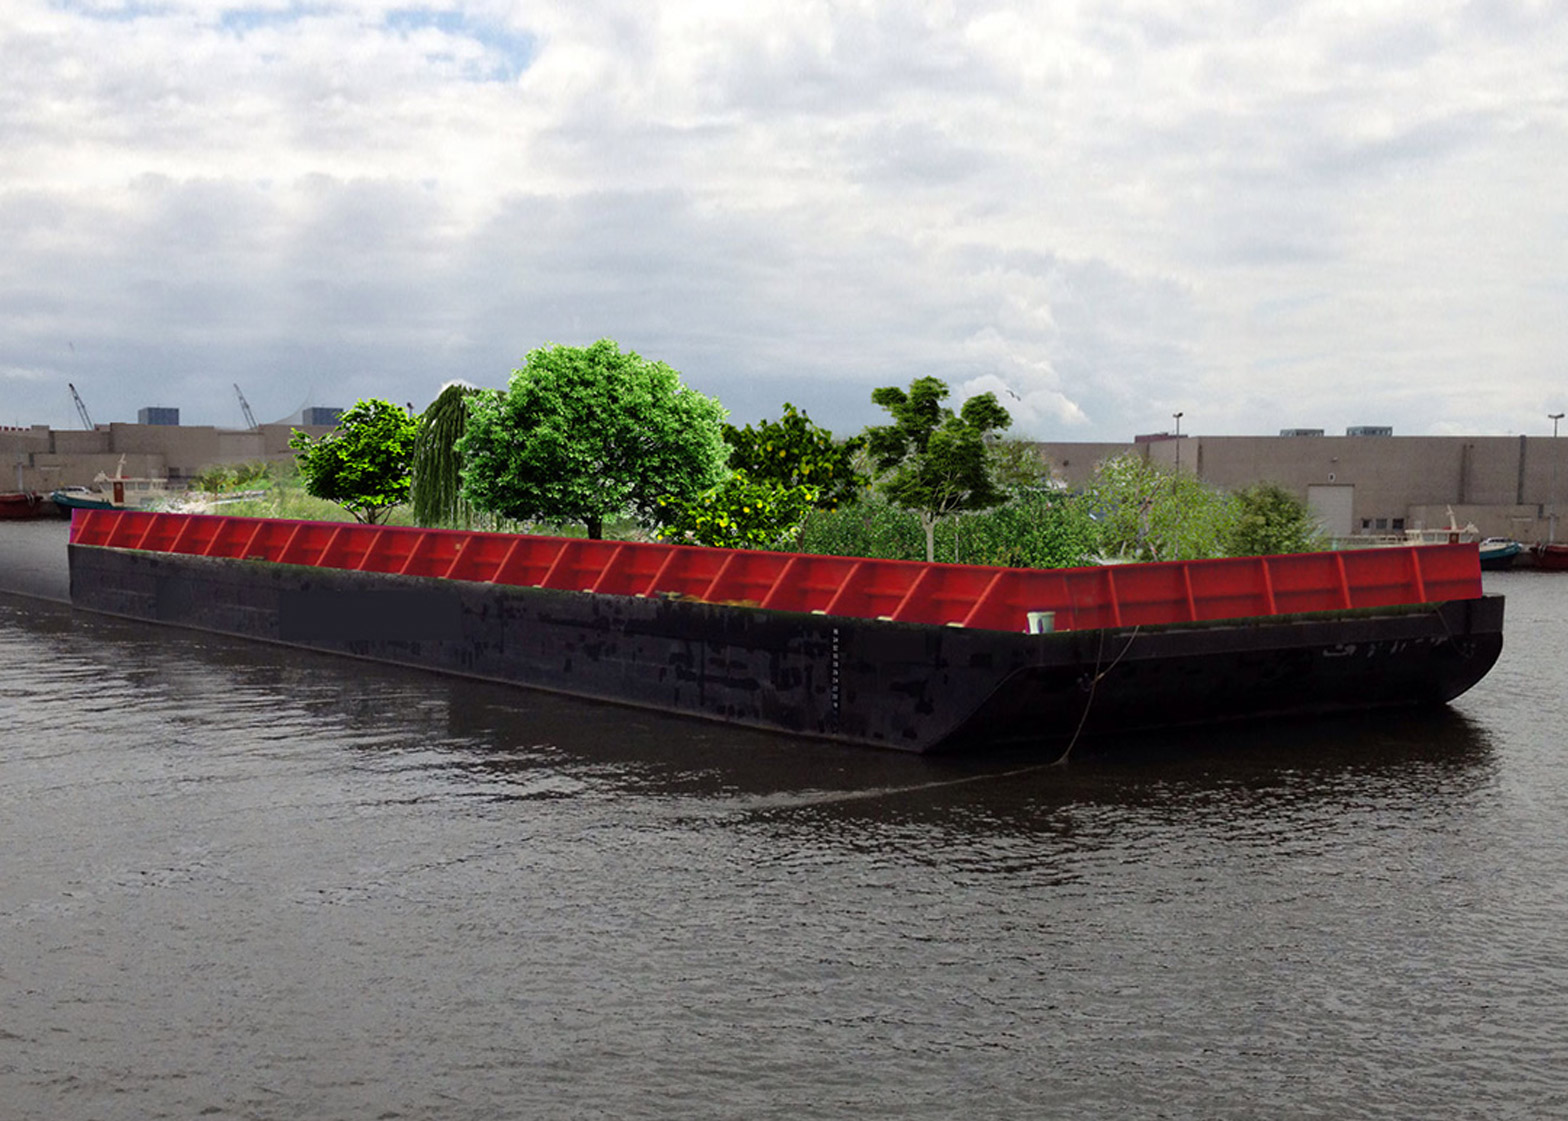 Swale-Floating-Farm-New-York-City-slideshow_dezeen_1568_0